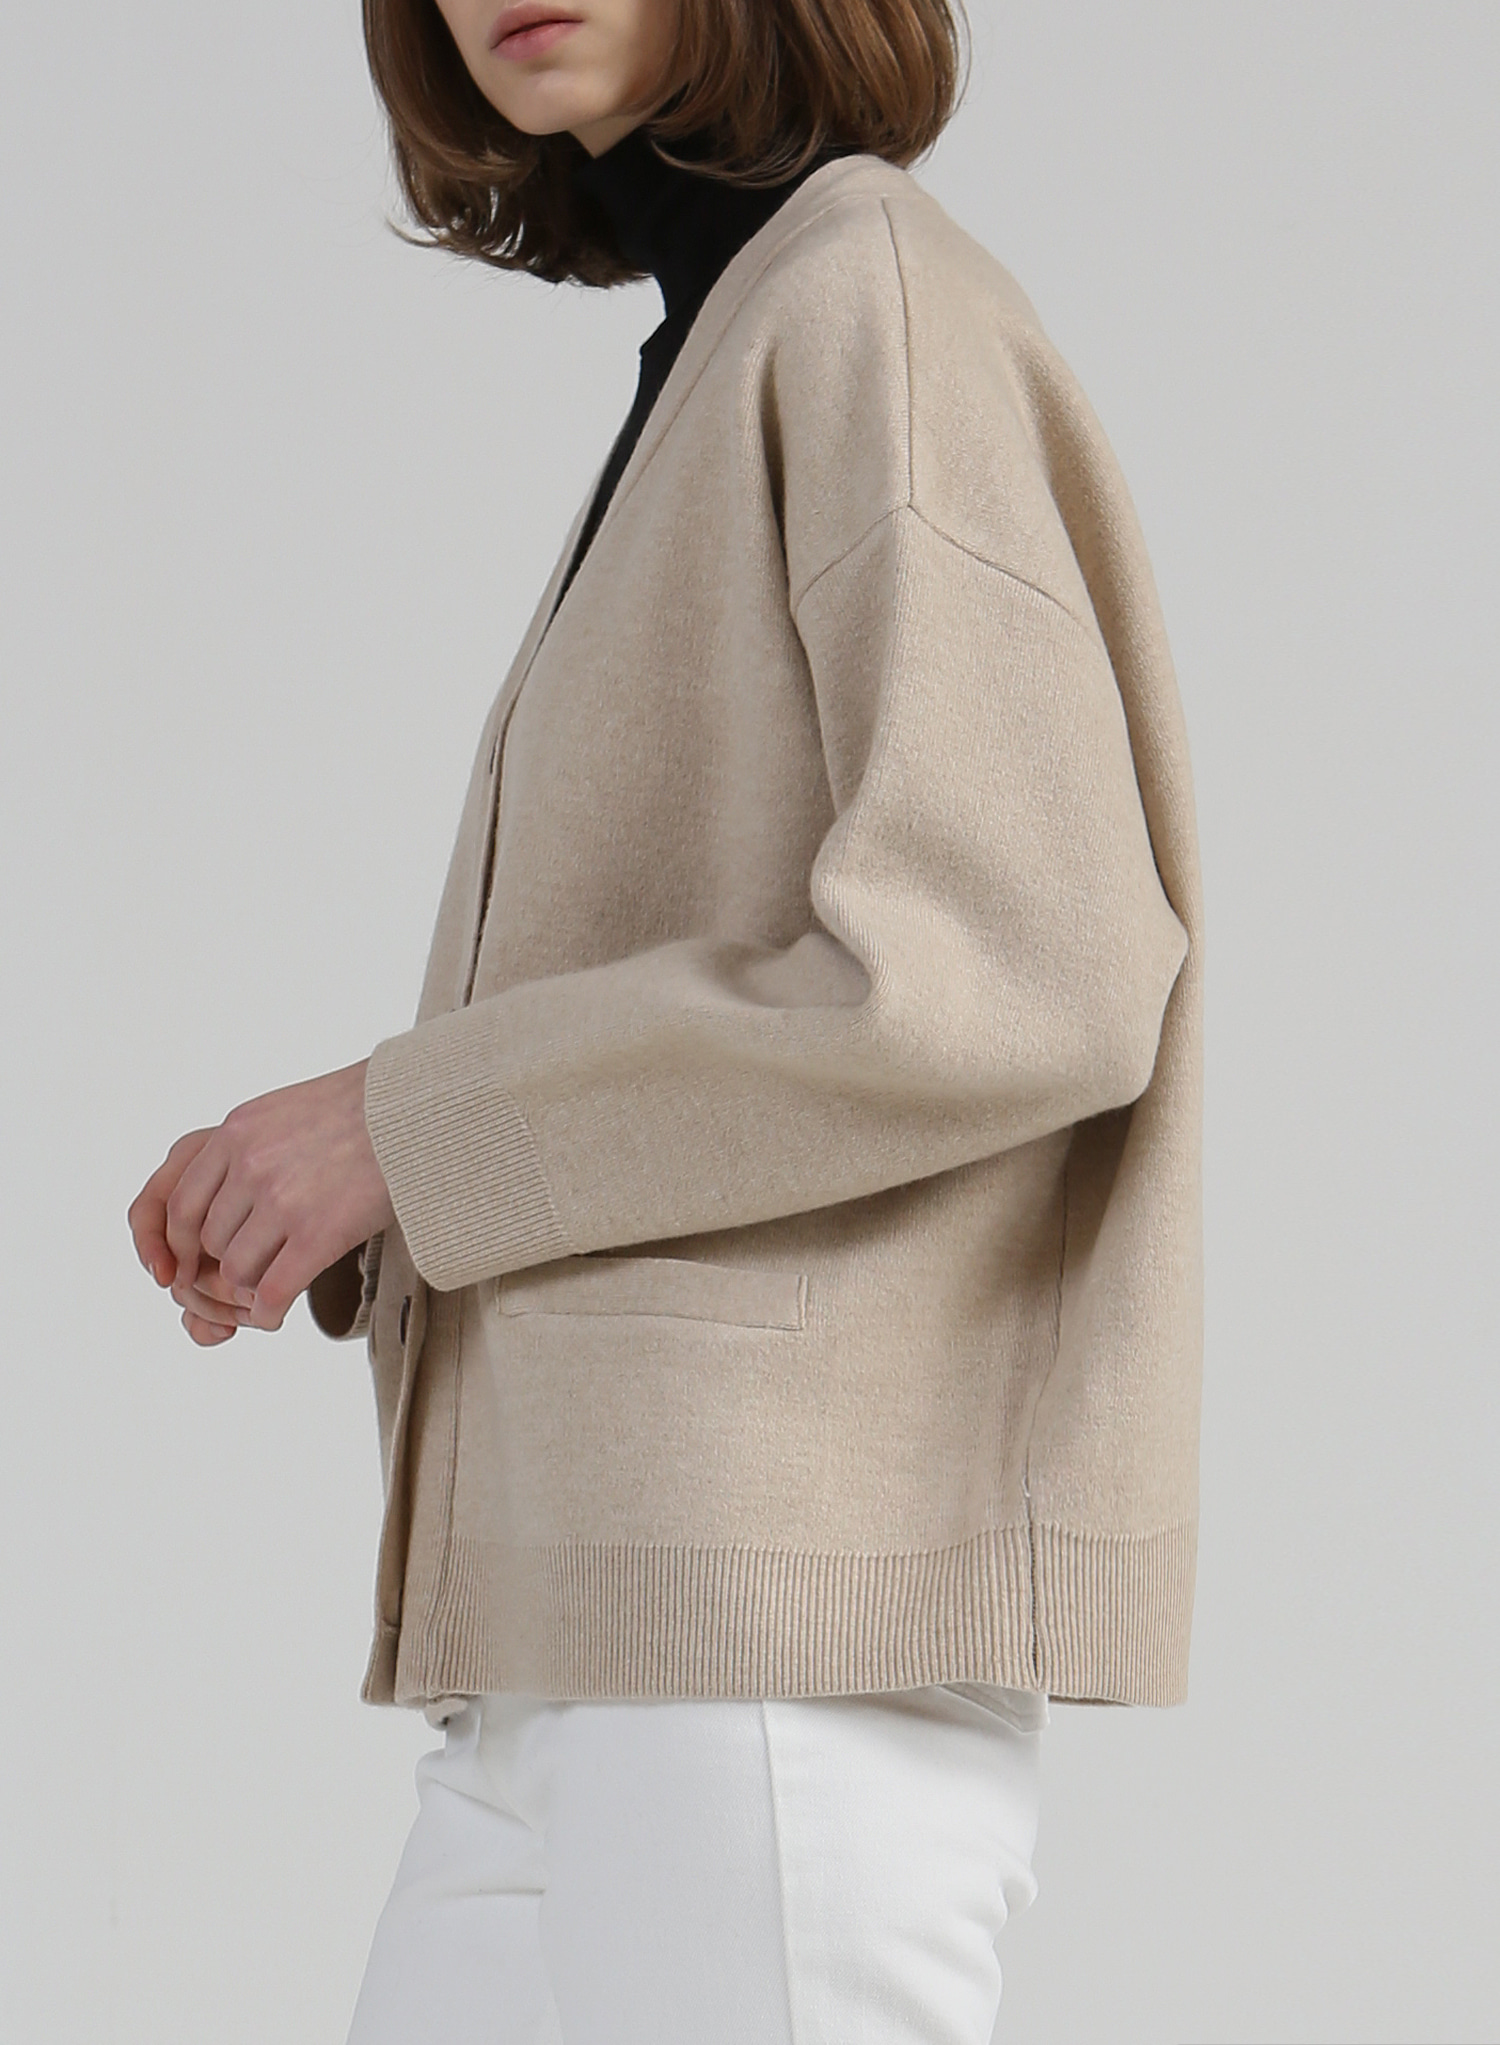 [SEASON OFF Event 50%↓] VINCI CASHMERE CARDIGAN